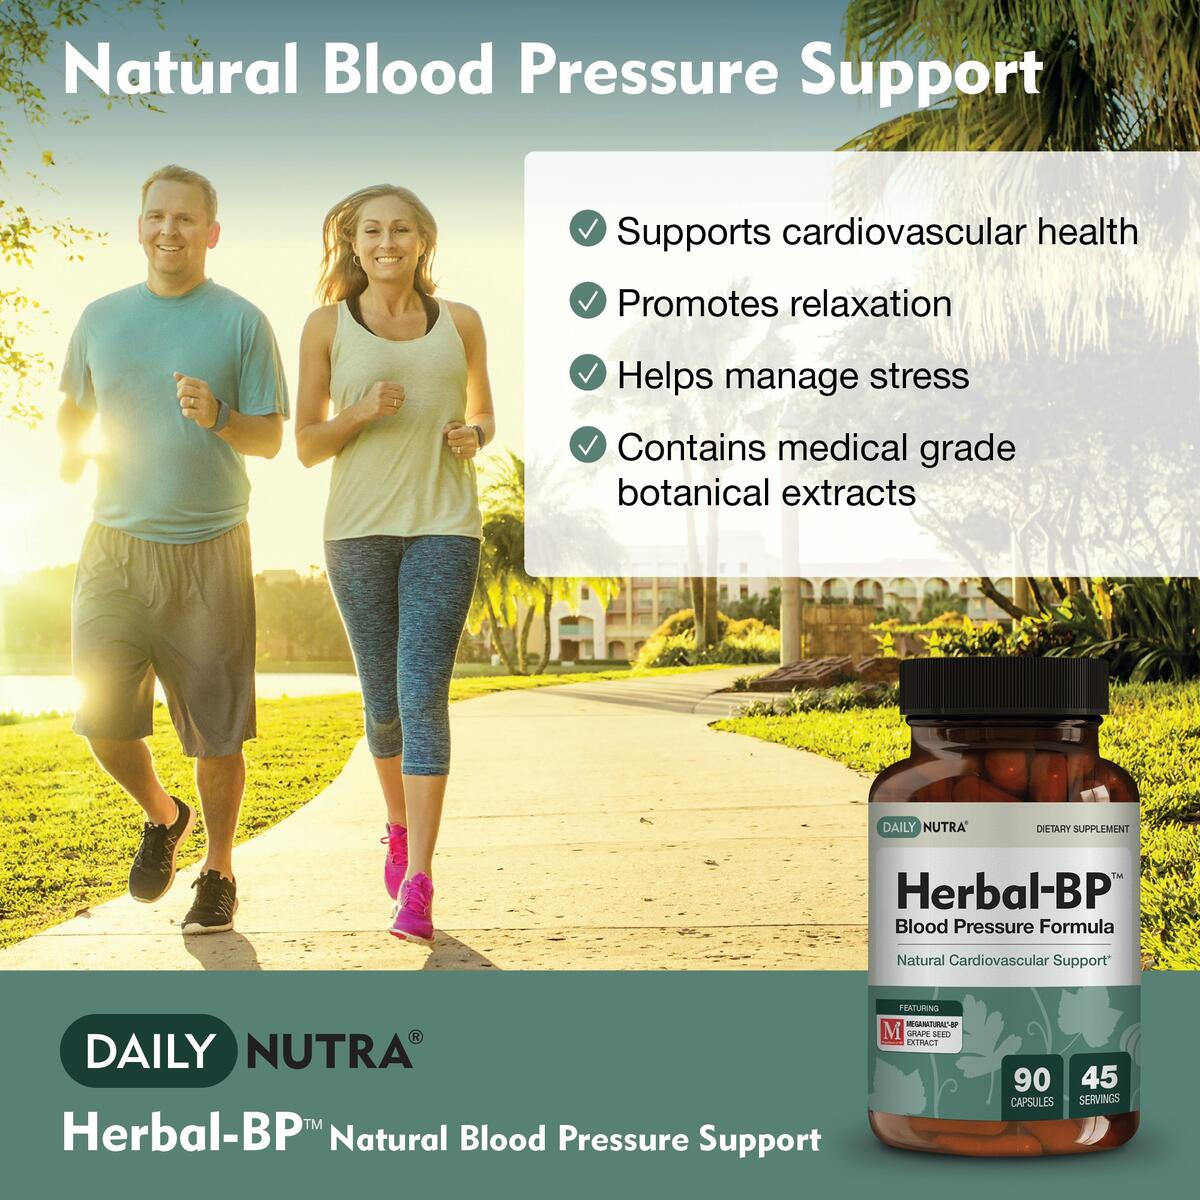 Herbal-BP Natural Blood Pressure Supplement by DailyNutra - Supports Cardiovascular Health & Stress Management | Medical Grade Plant Extracts - Safe, Long-Term Support